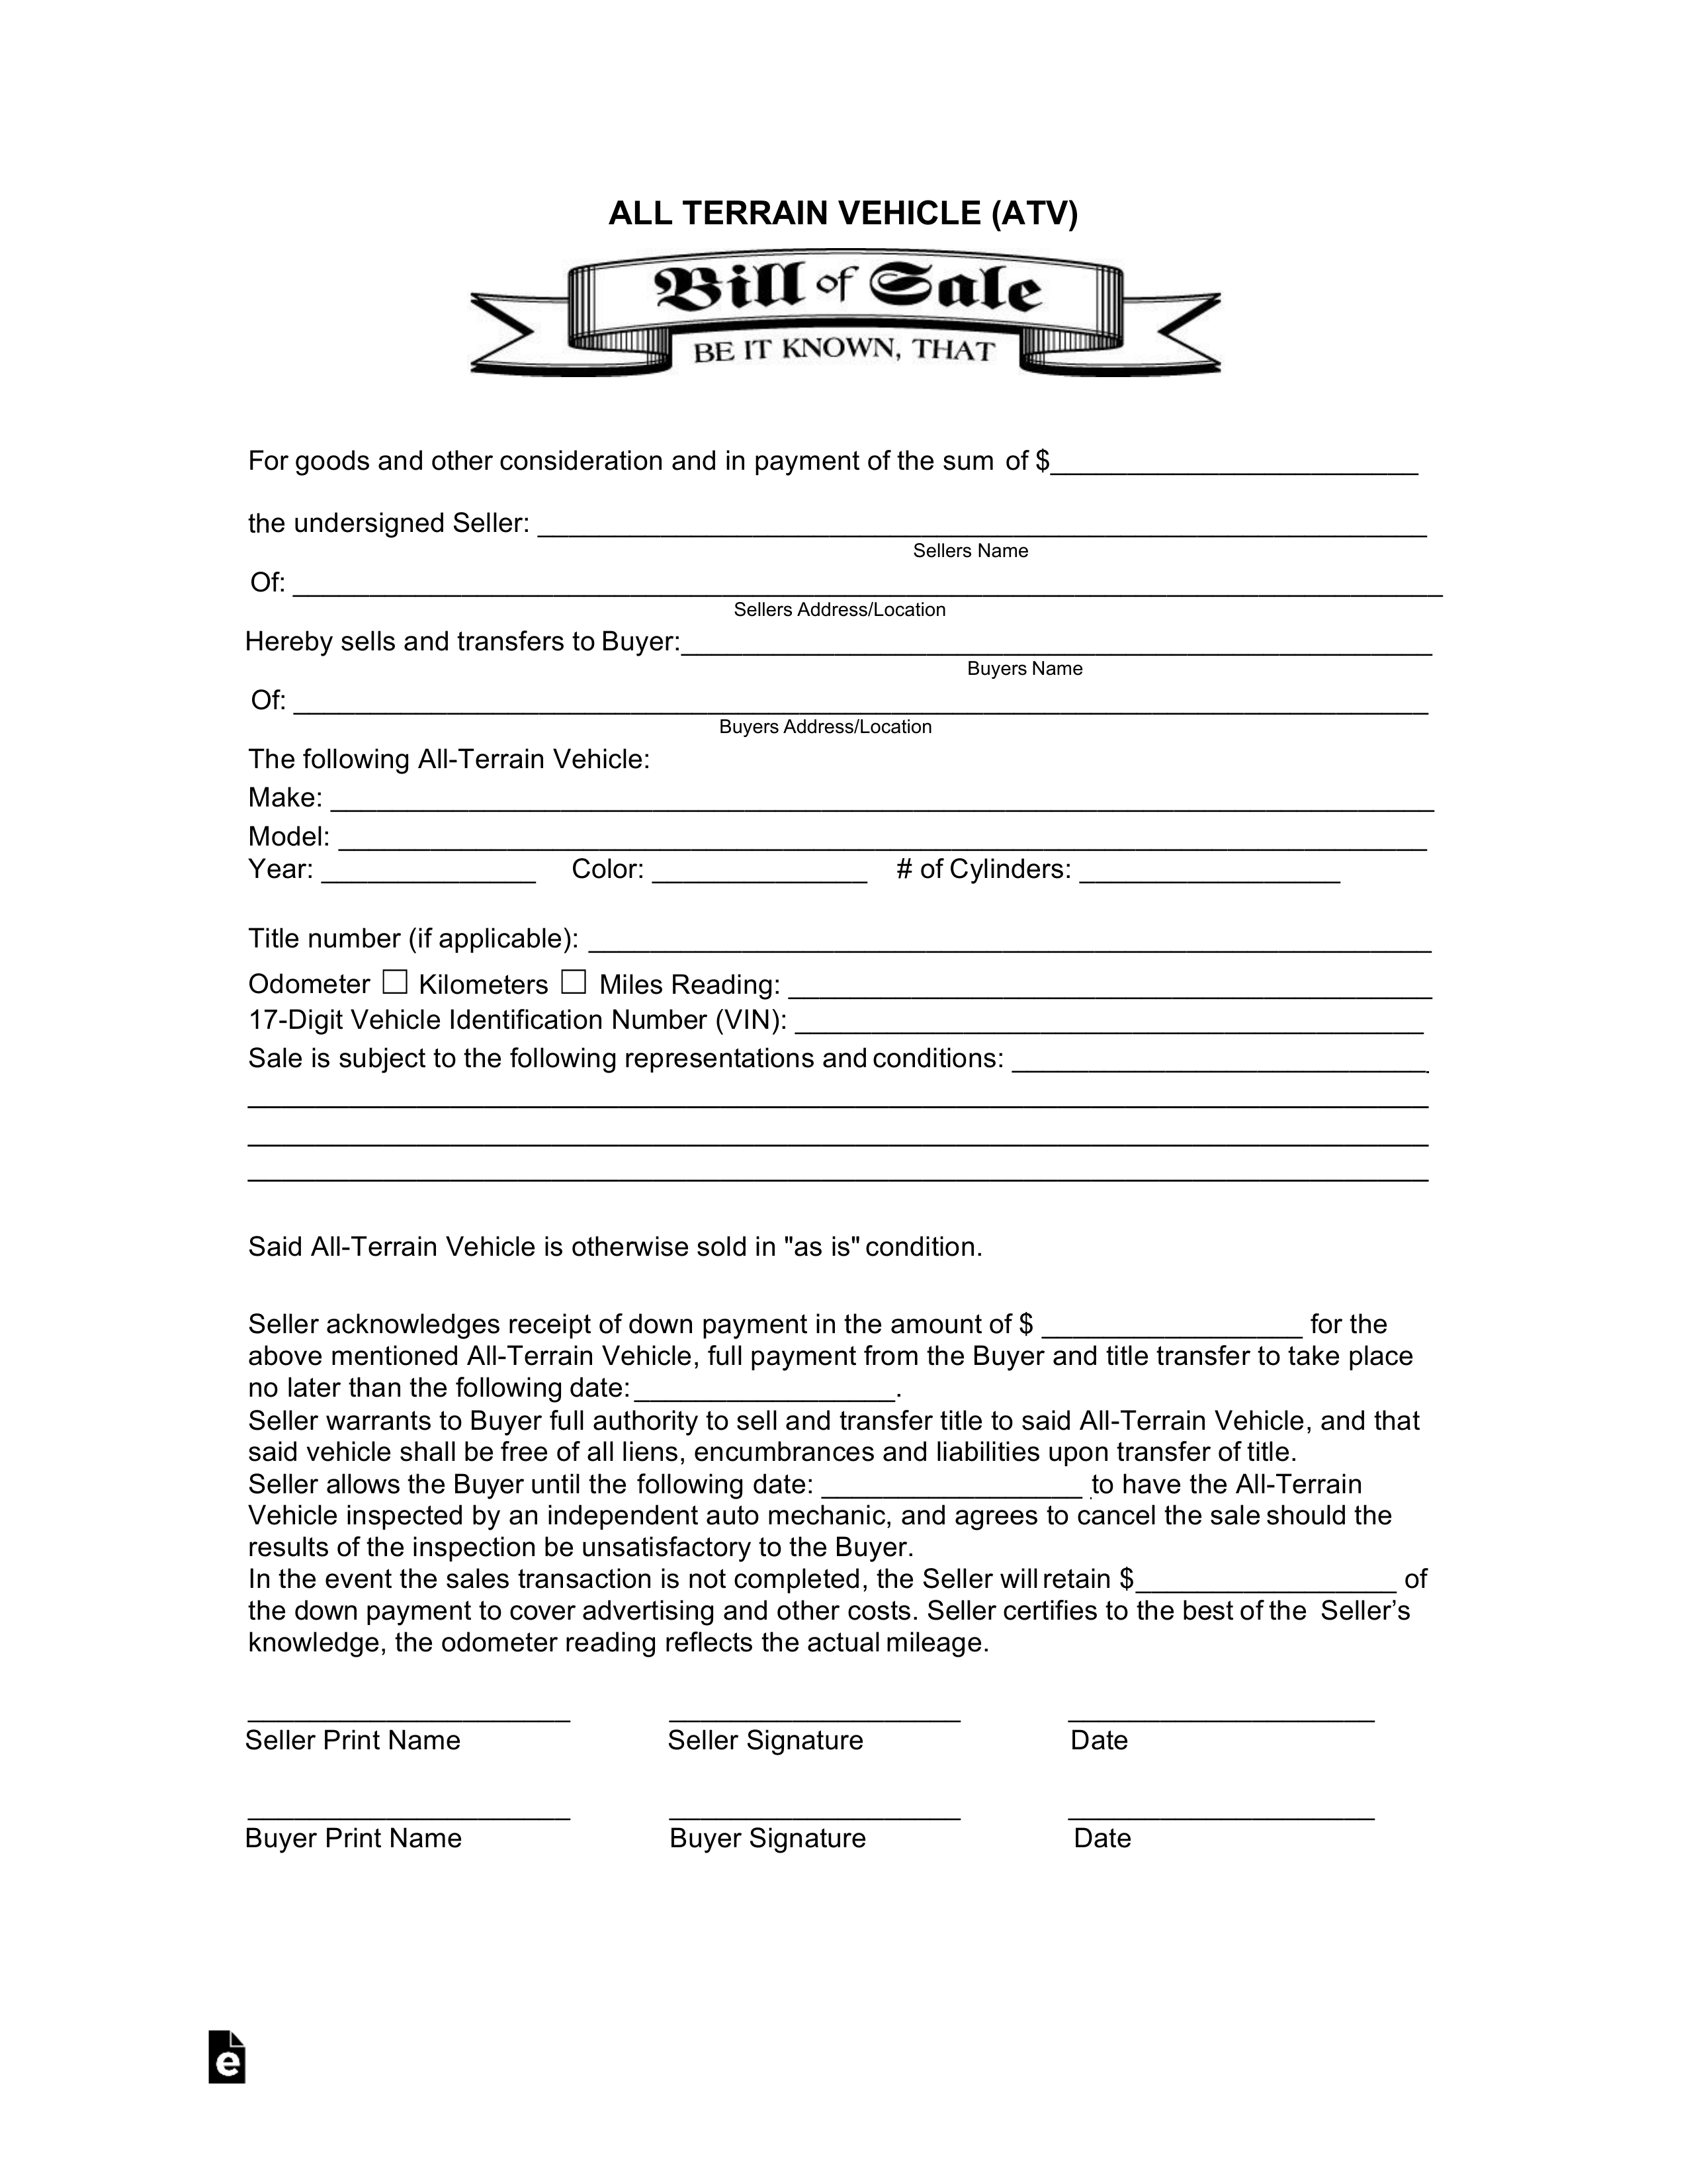 All-Terrain Vehicle (Atv) Bill Of Sale Form   Eforms – Free